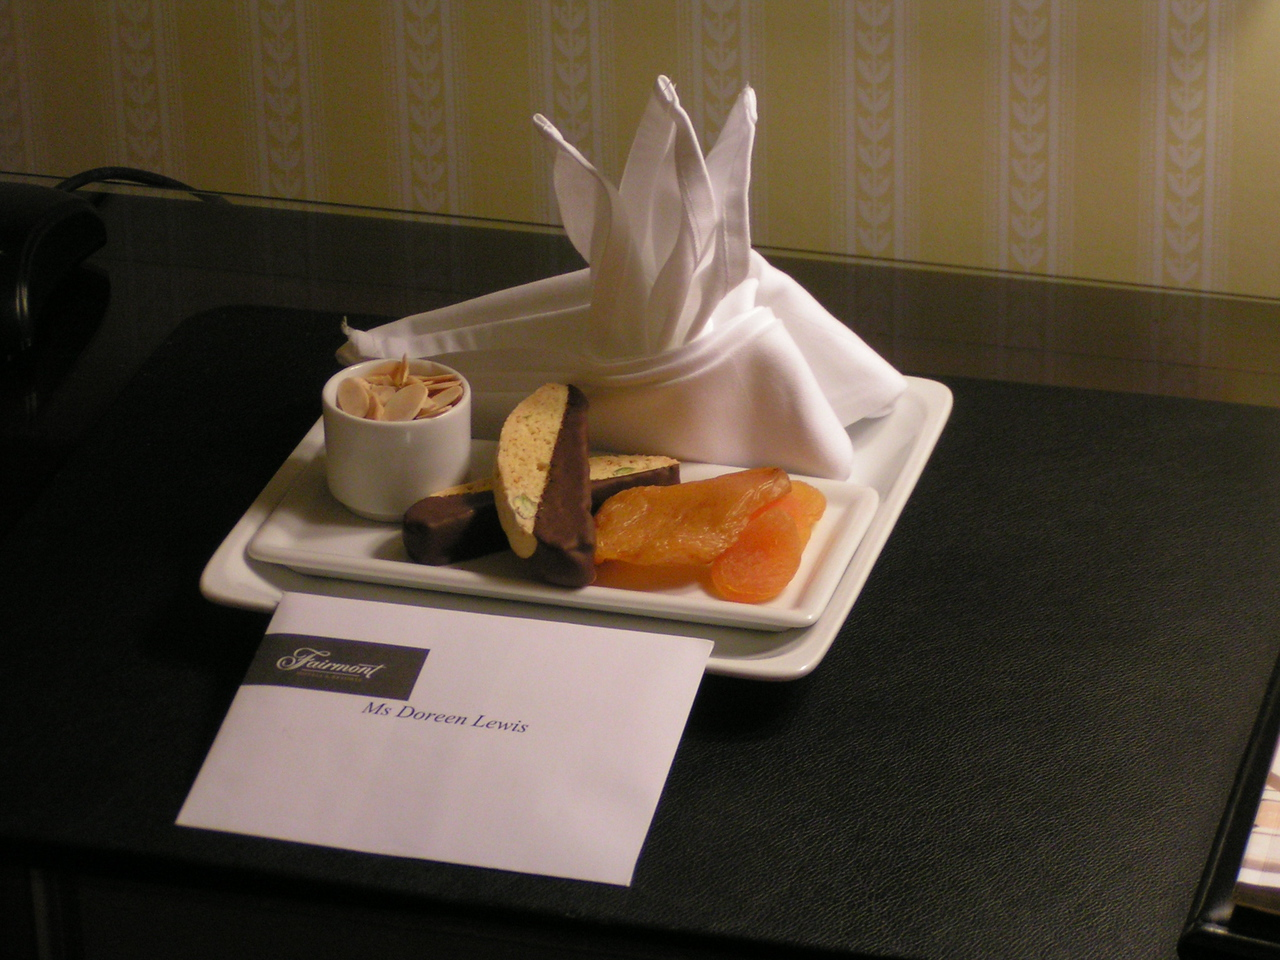 A tasty snack and a welcoming note await us in our suite.